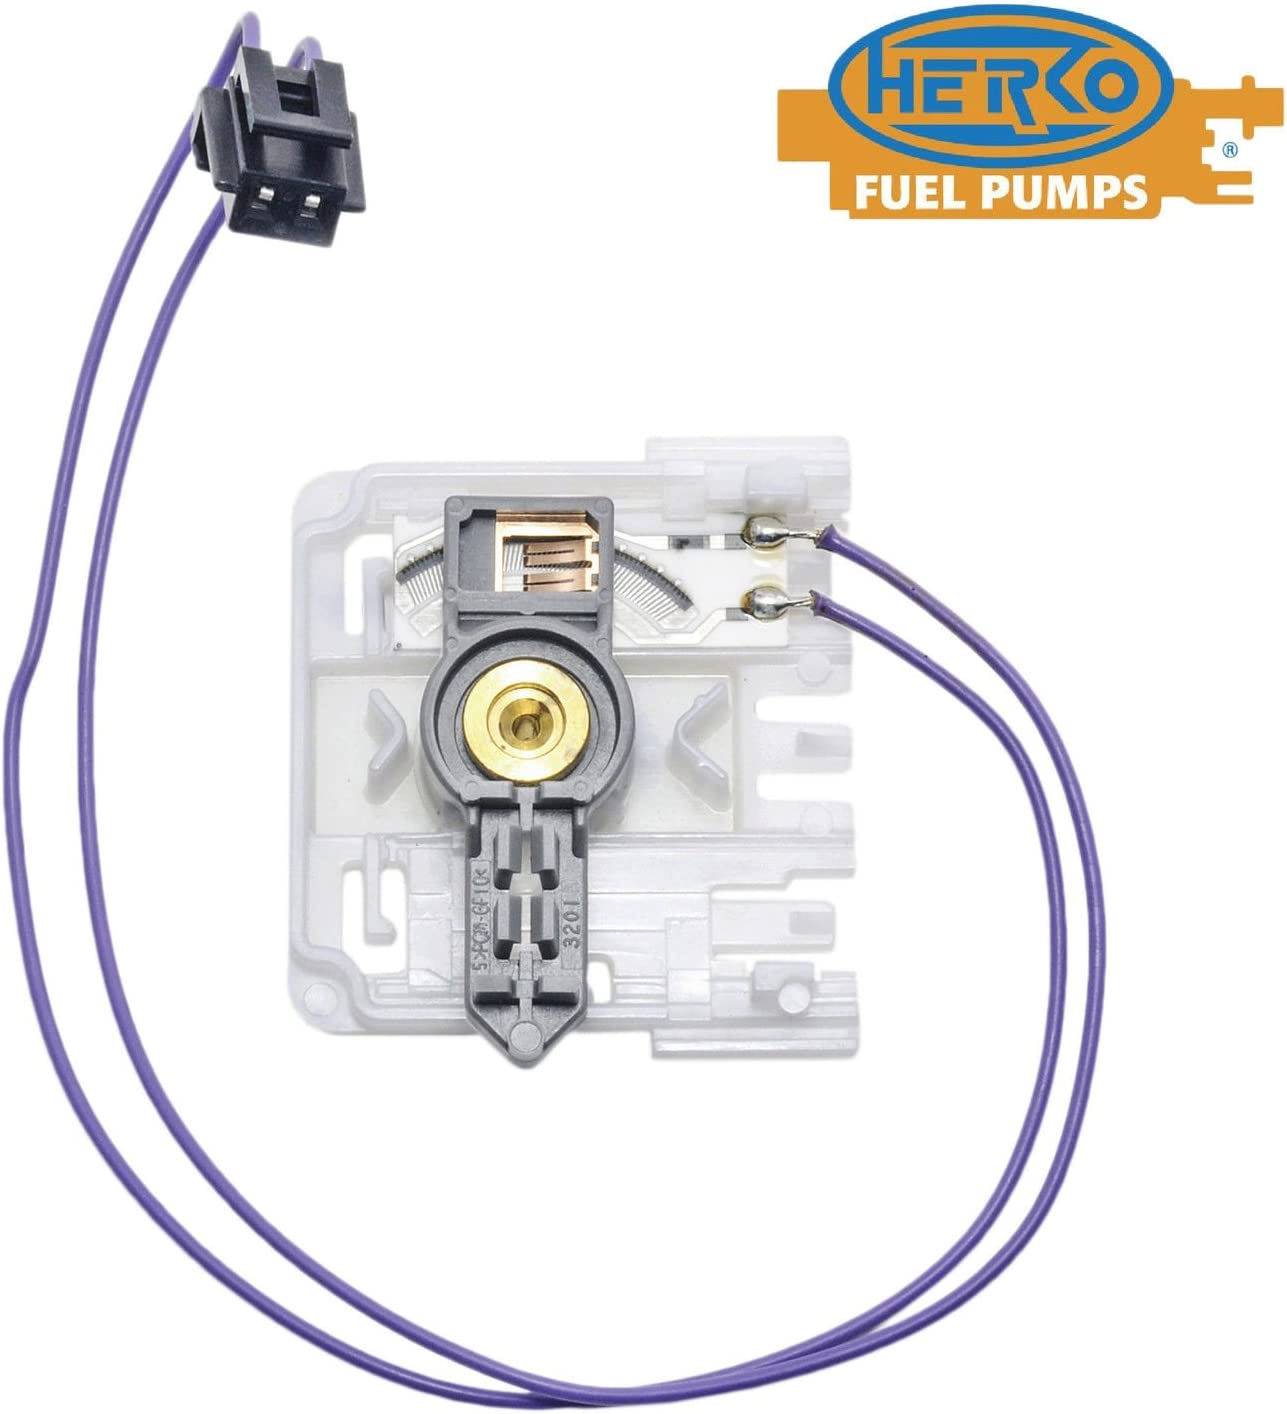 New Herko Automotive Fuel Level Sensor For Chevrolet And GMC 2004-2007